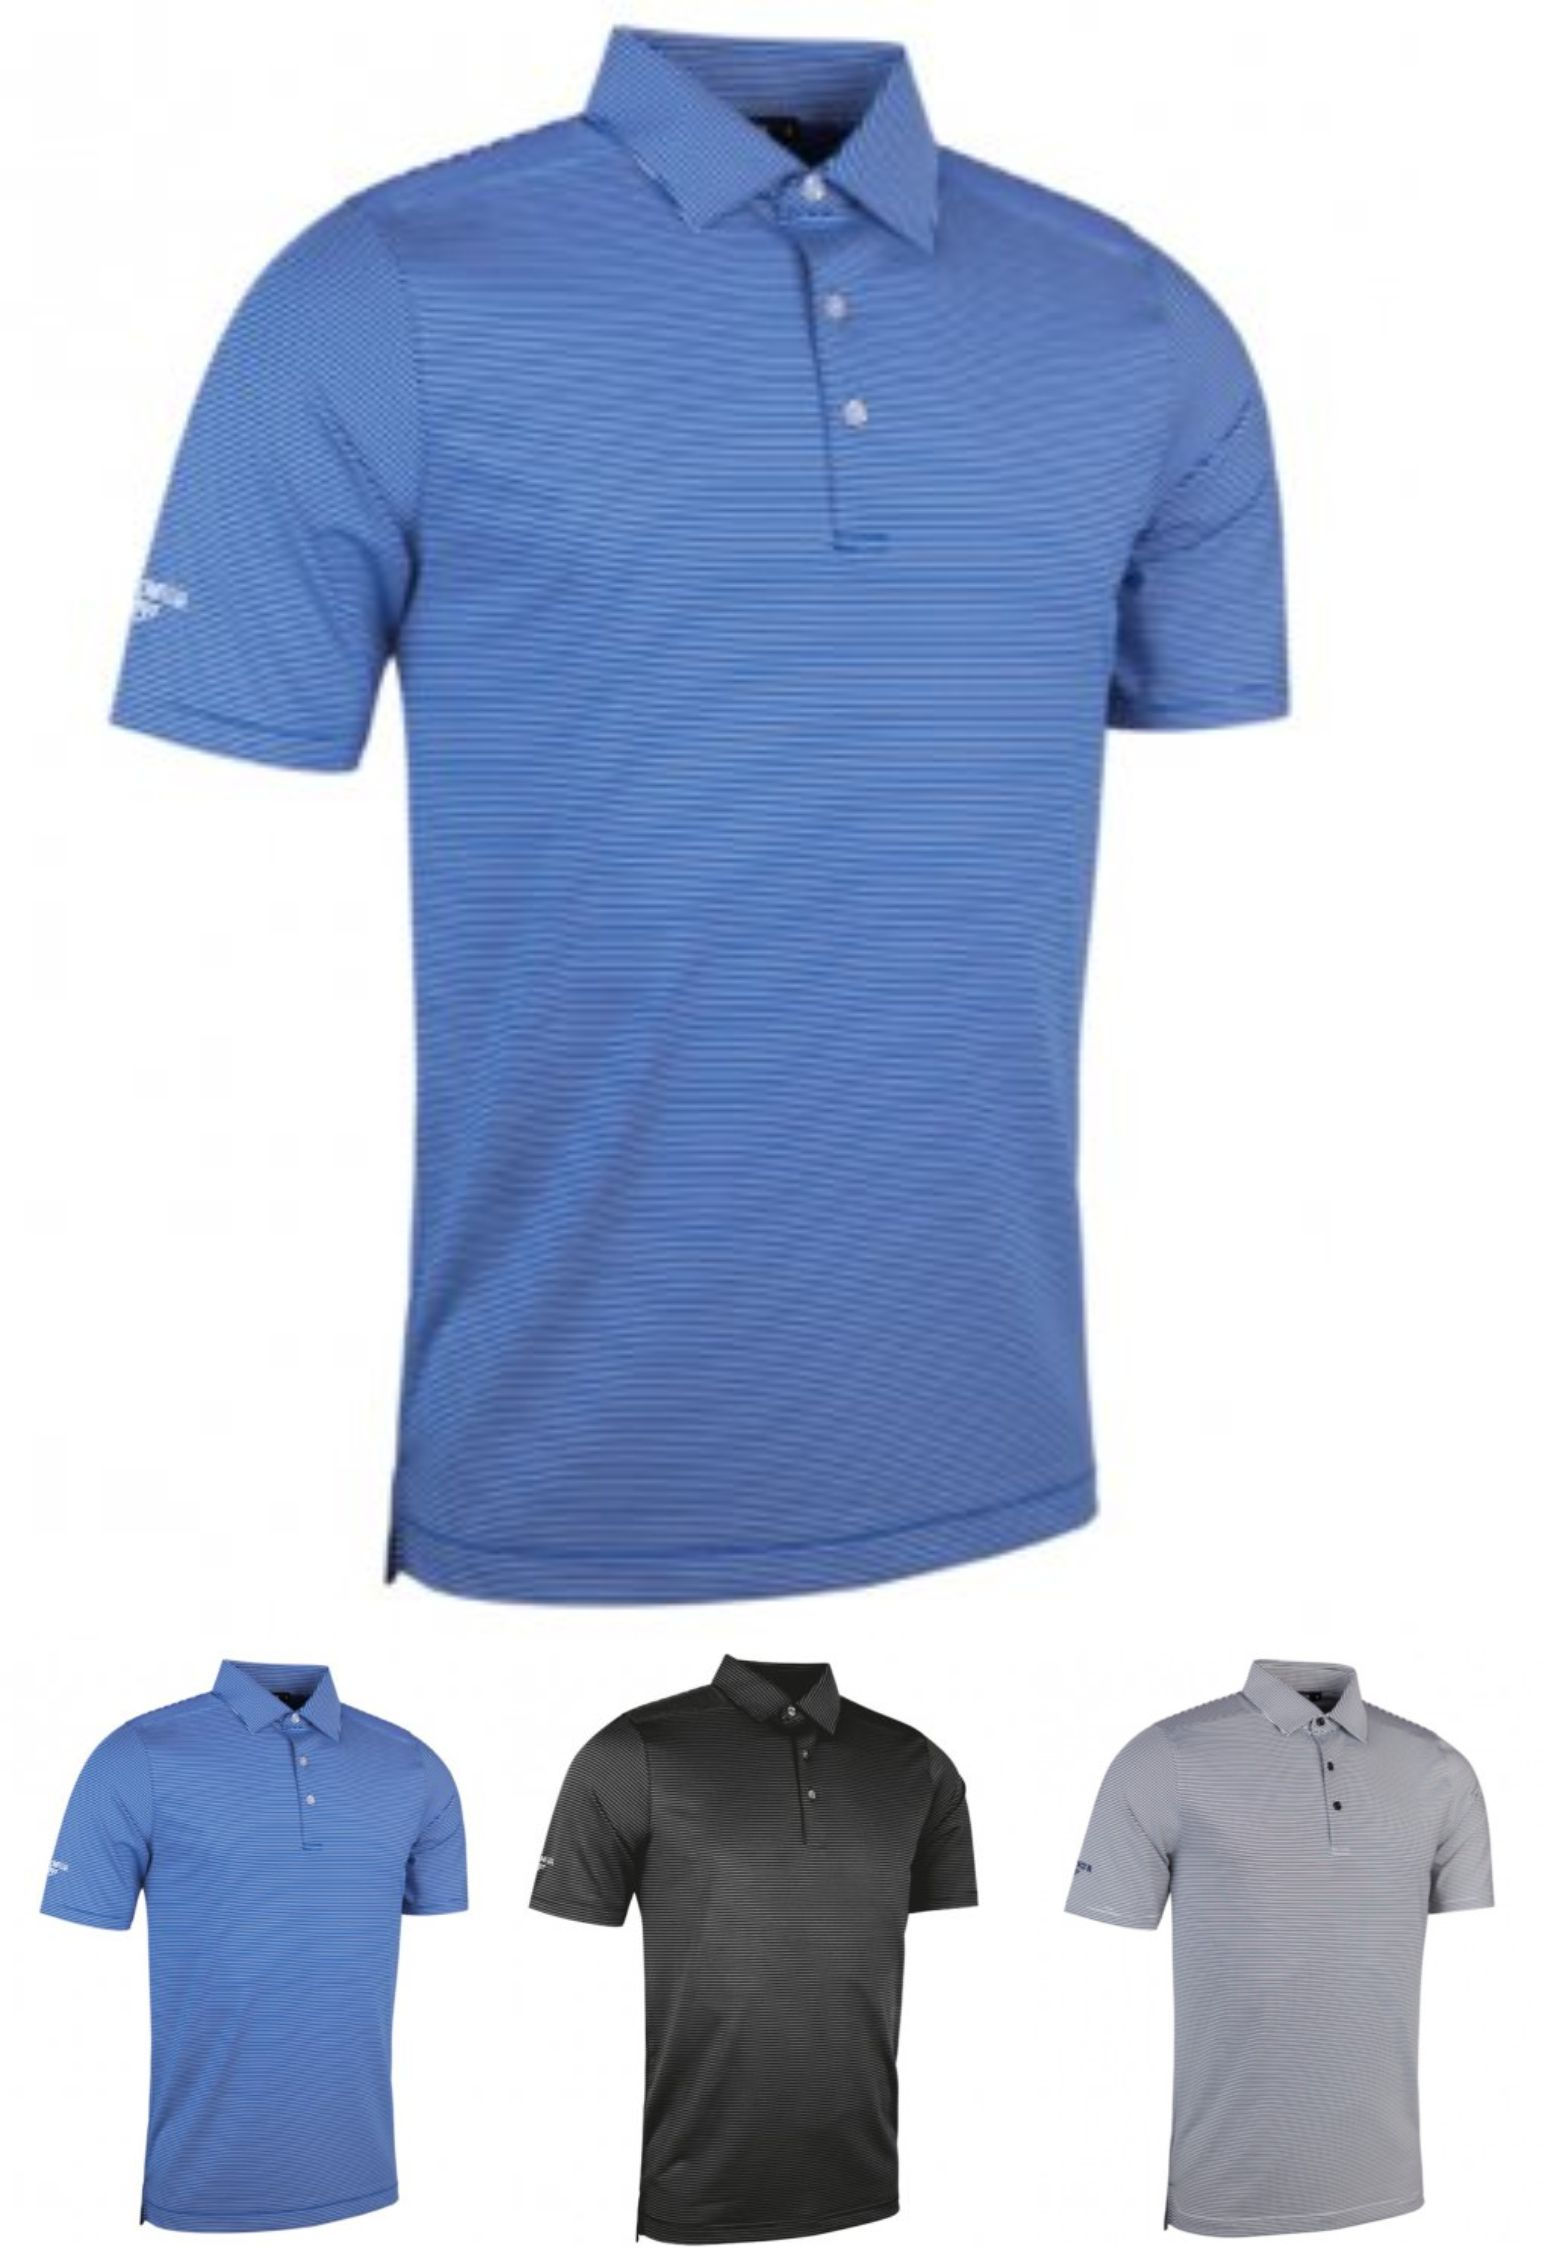 GM97 Glenmuir Micro Stripe Polo Shirt